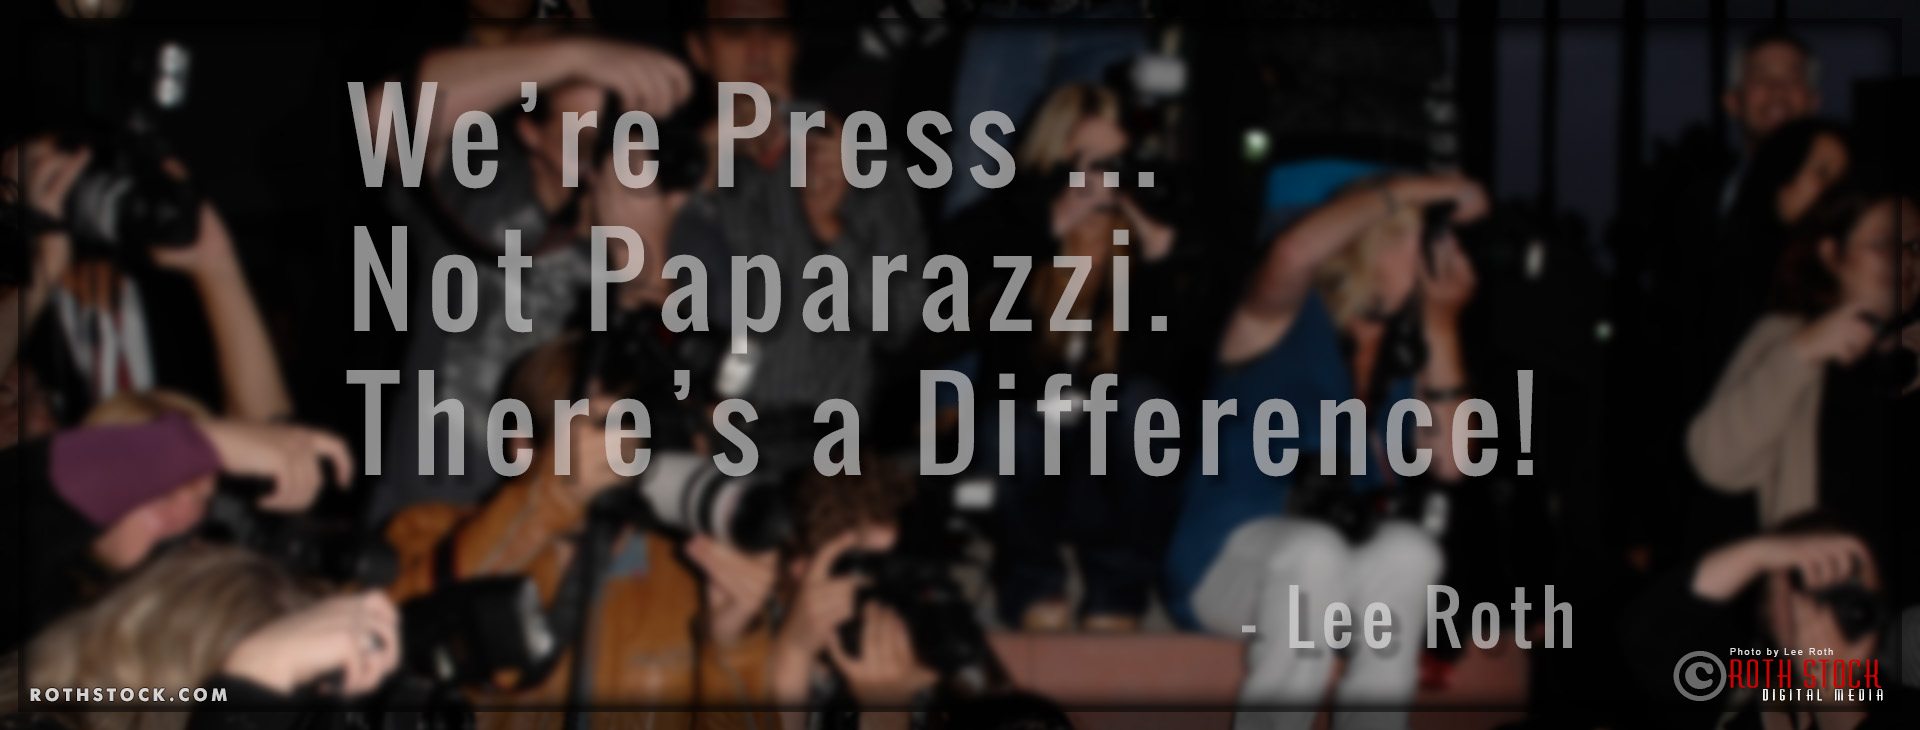 Roth Stock Digital Media - We're Press ... Not Paparazzi. There's a Difference!